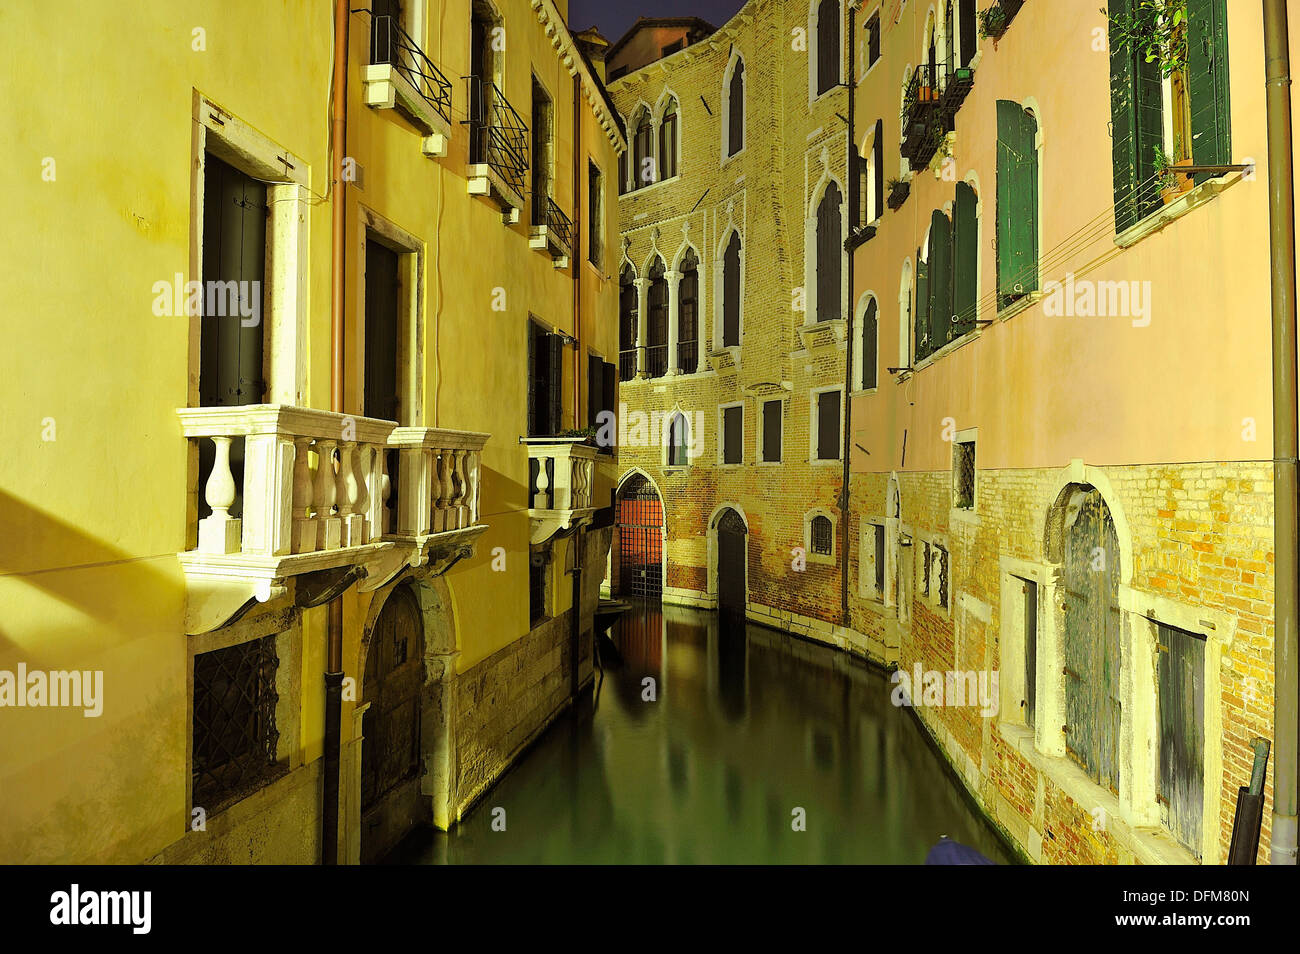 The city of Venice is sinking at a rate of one centimeter per year. - Stock Image